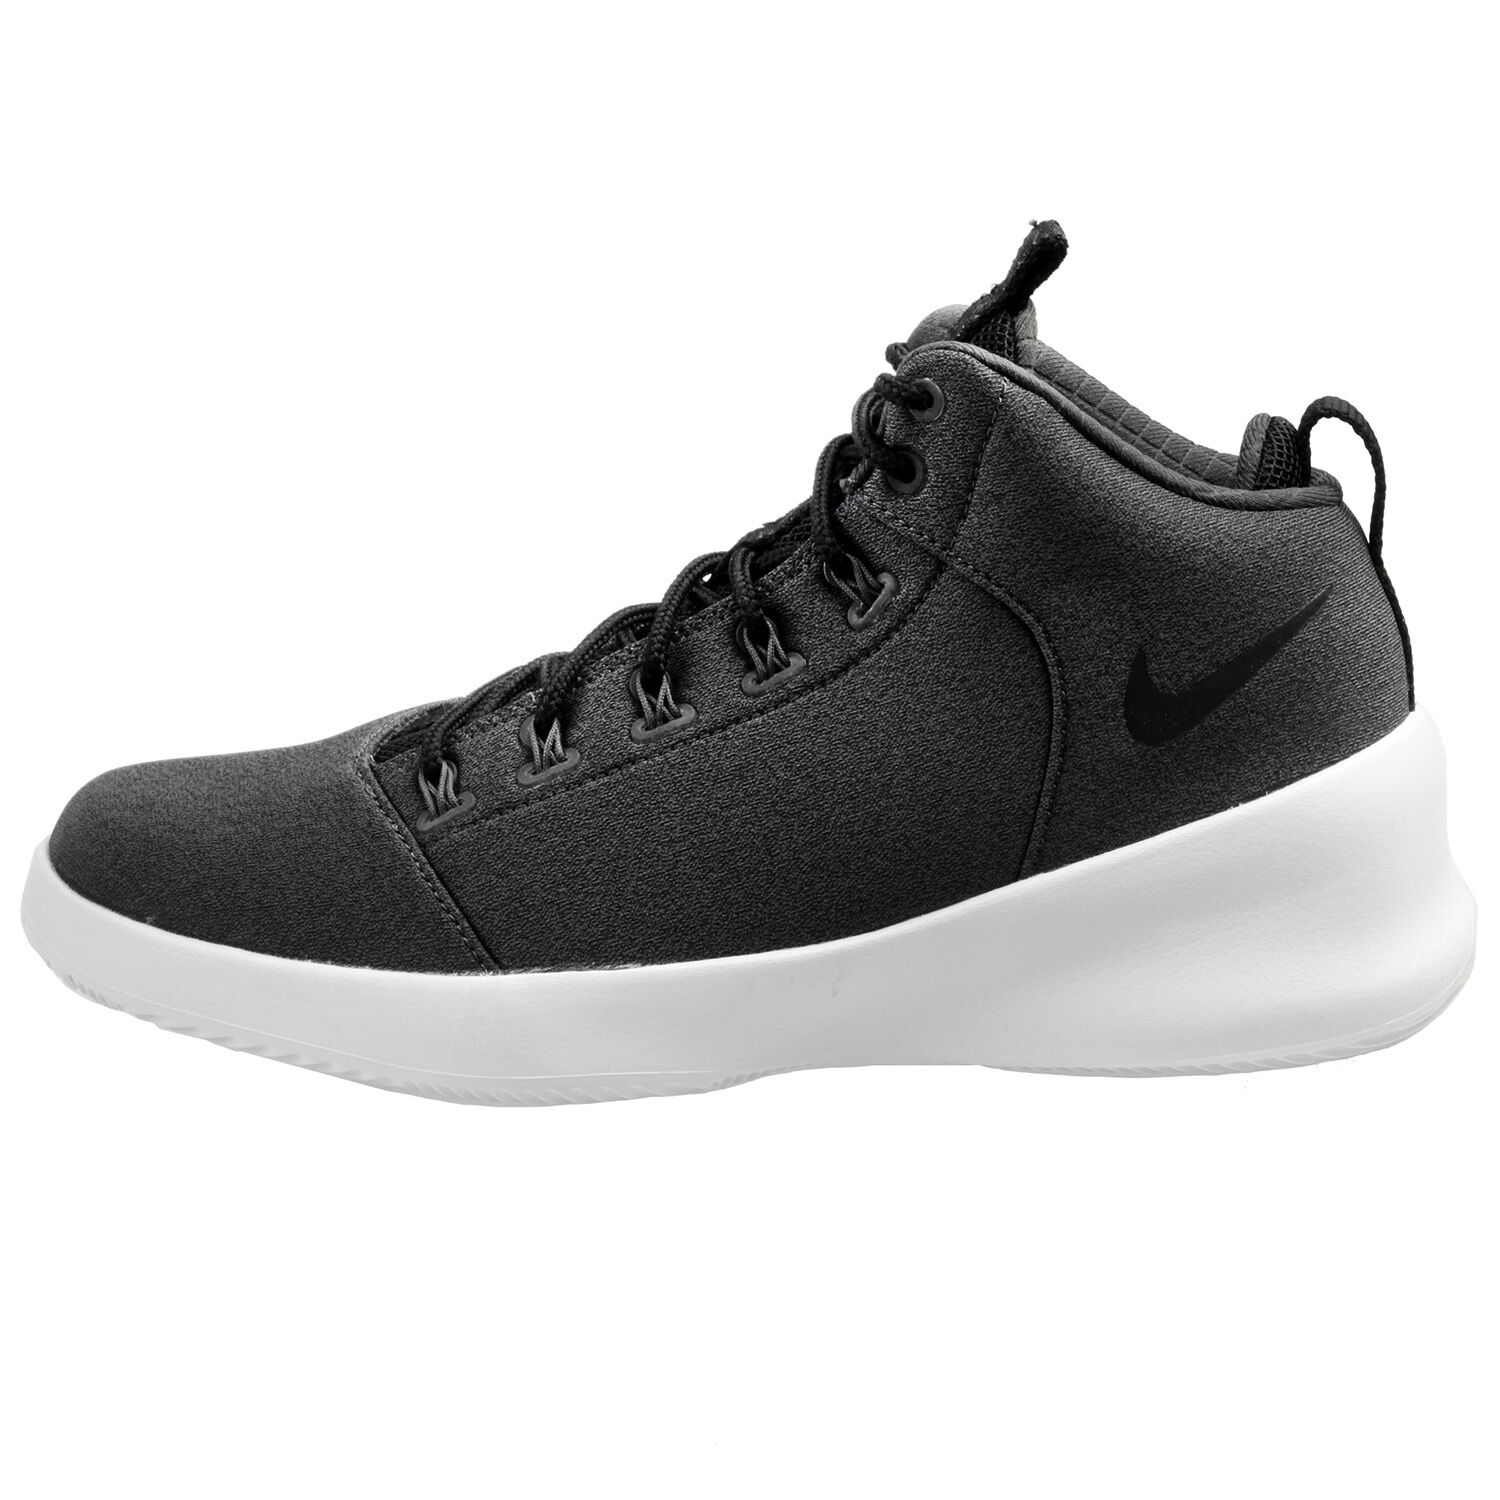 Nike Hyperfr3sh Mens 759996-003 Anthracite Off Court Shoes Sneakers Size 8.5